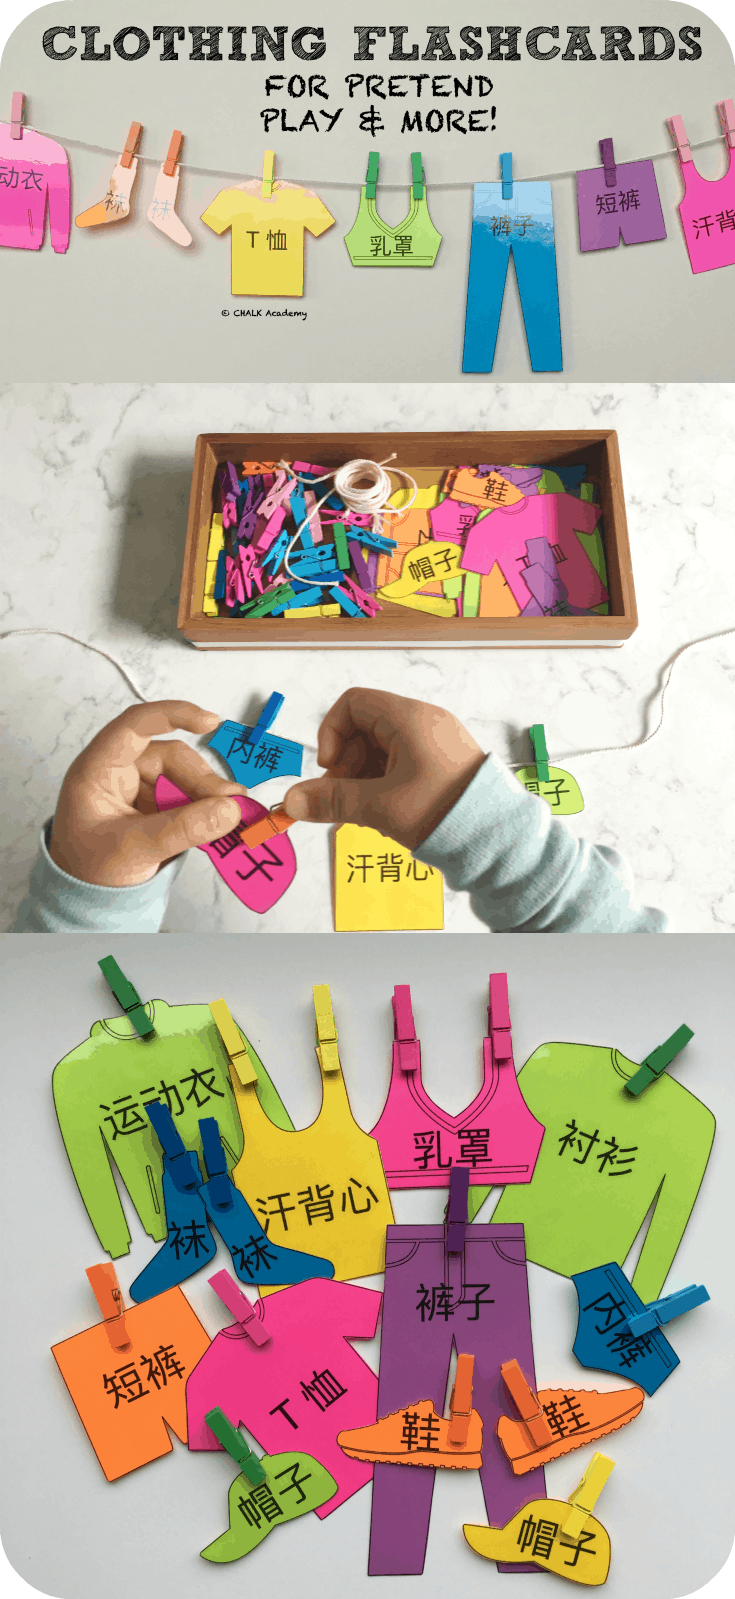 Clothing flashcards for color matching, pretend play, and more!  Fun way to strengthen fine motor skills and practice reading sight words!  Free printables available in Simplified Chinese, Traditional Chinese, English, & Korean. Preschool | Elementary school | Homeschool | Montessori